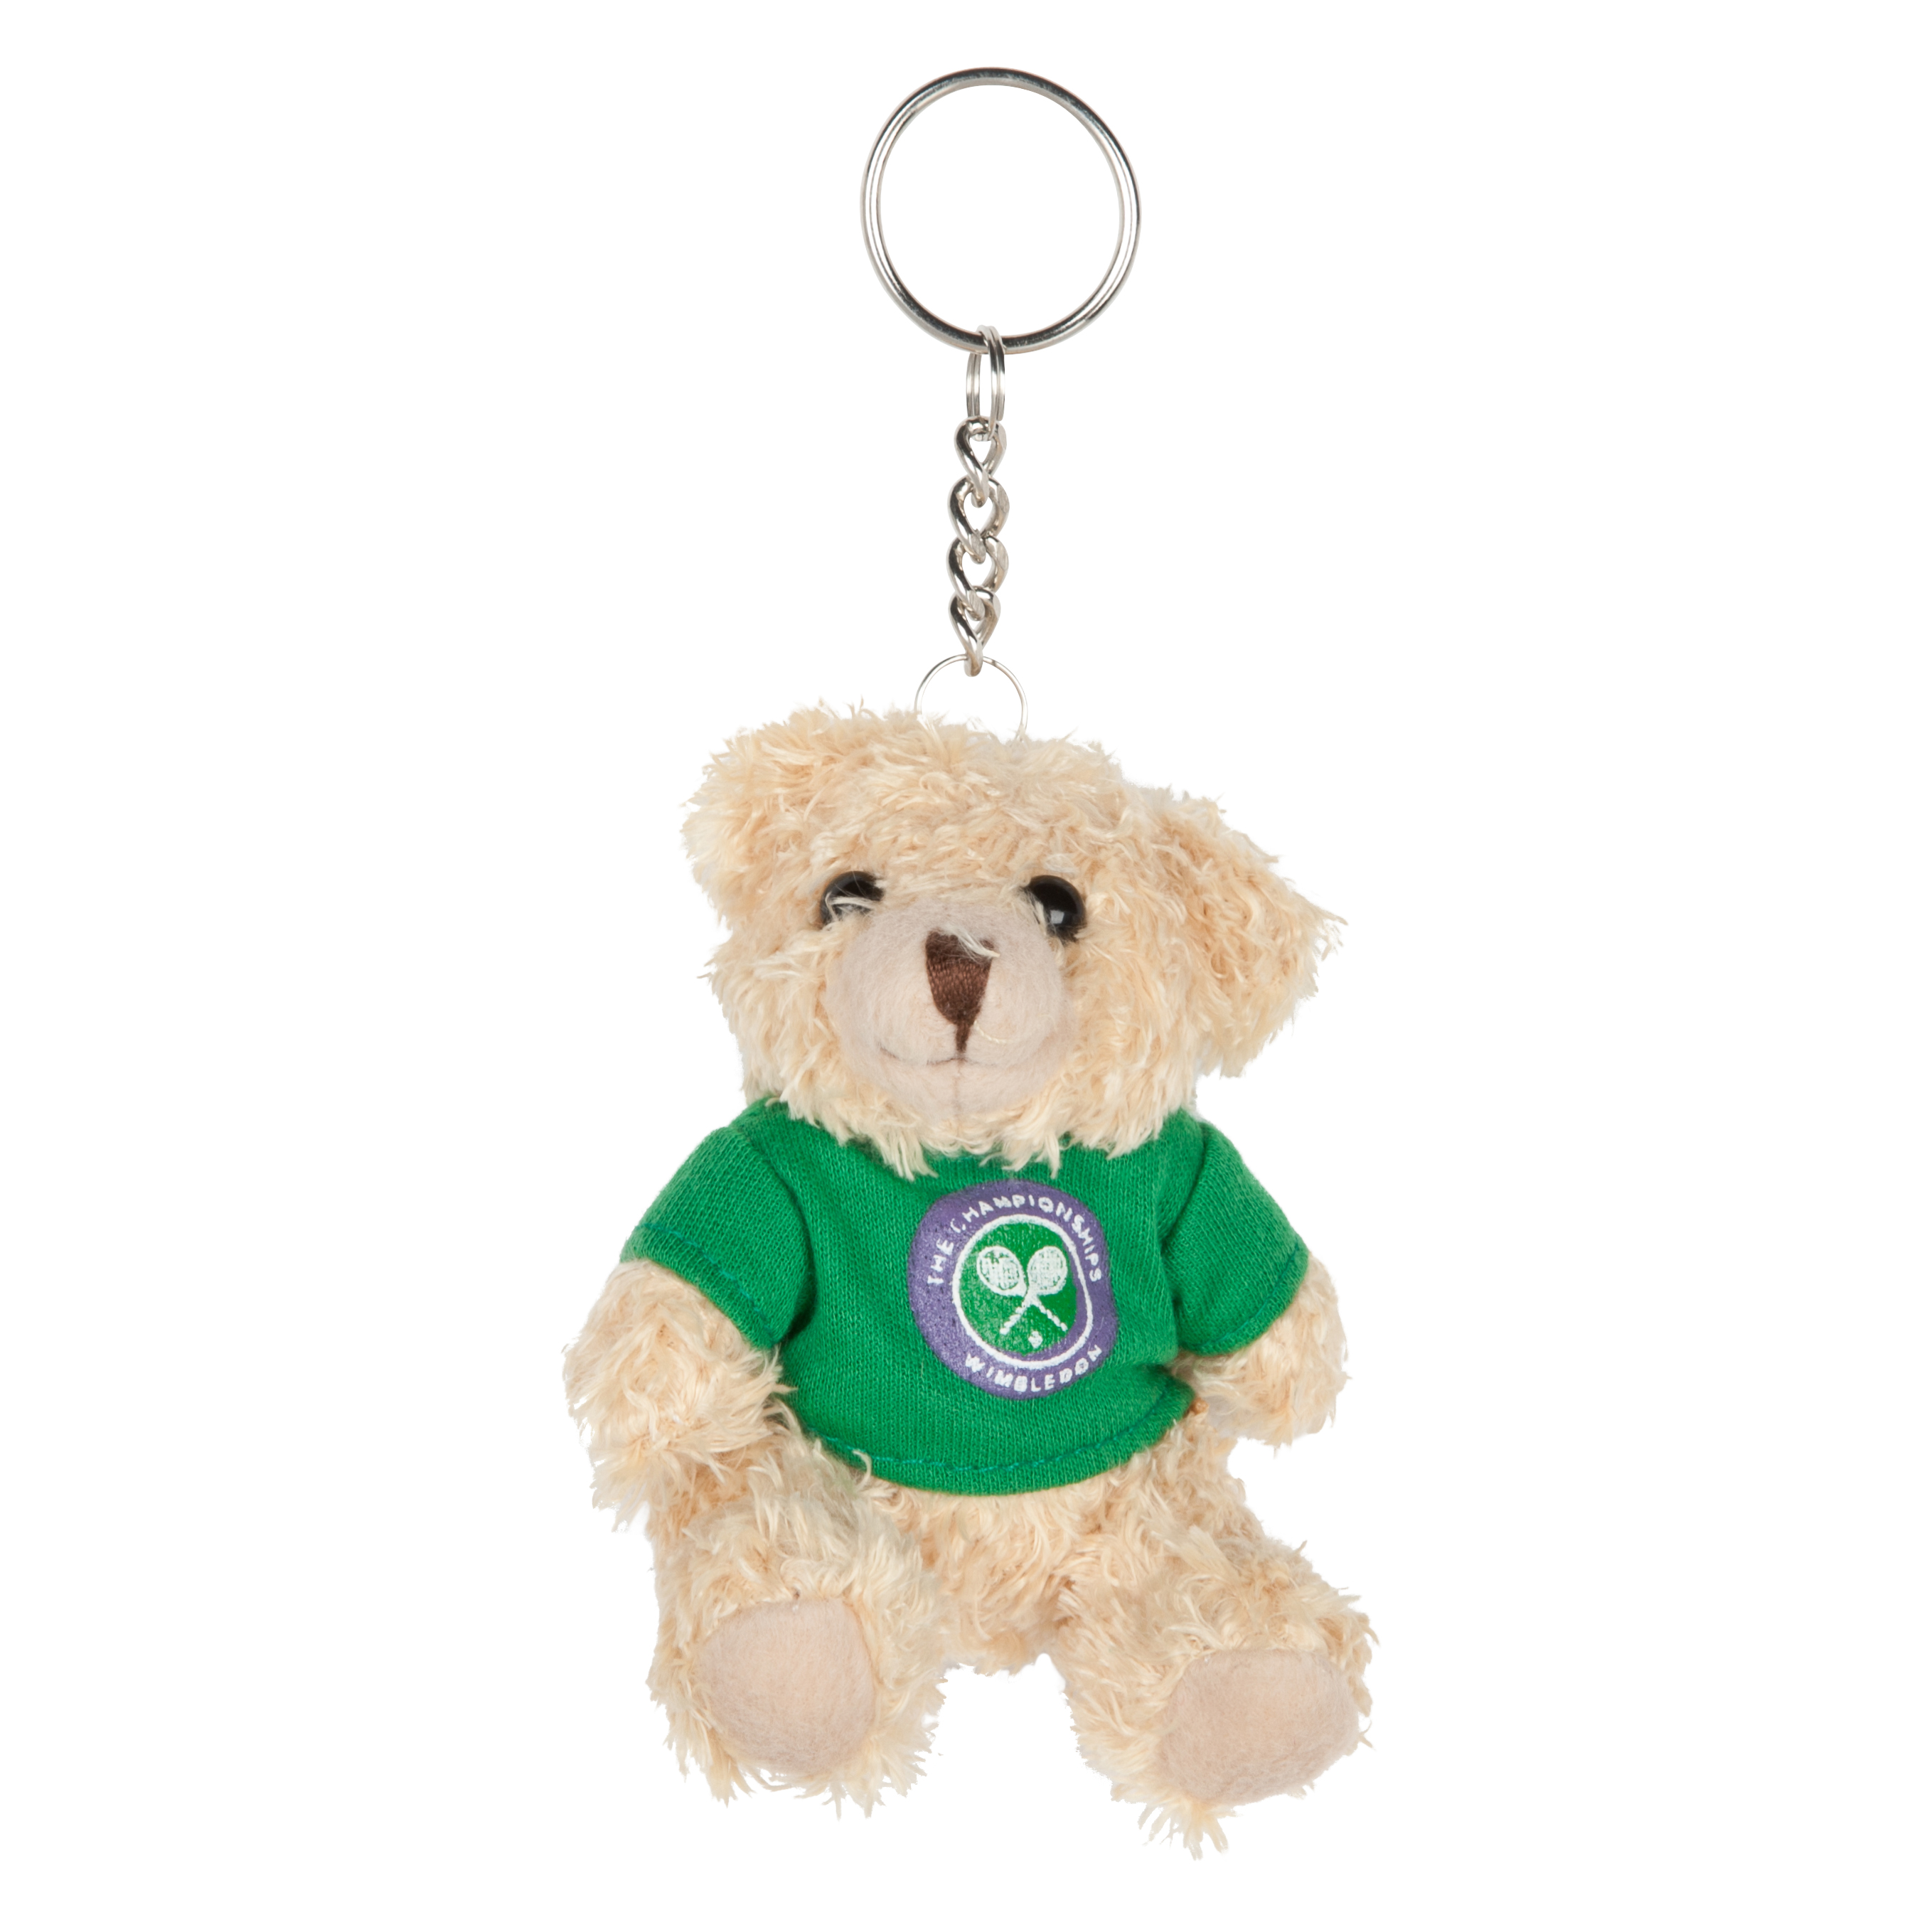 Wimbledon Ball Boy Bear Keyring